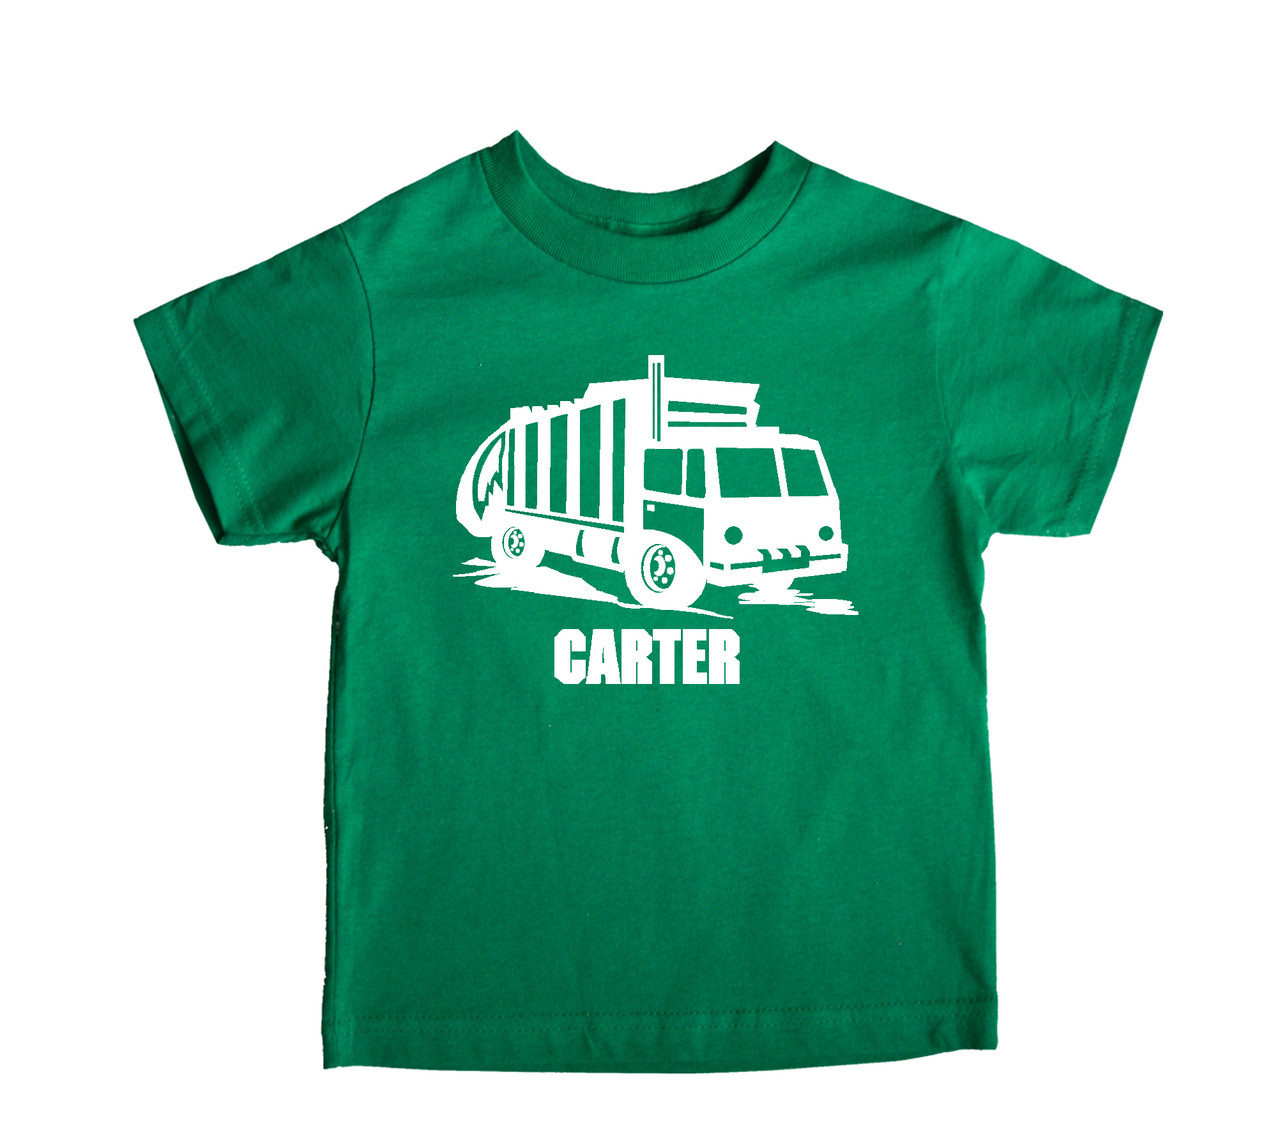 Garbage recycling truck party shirt